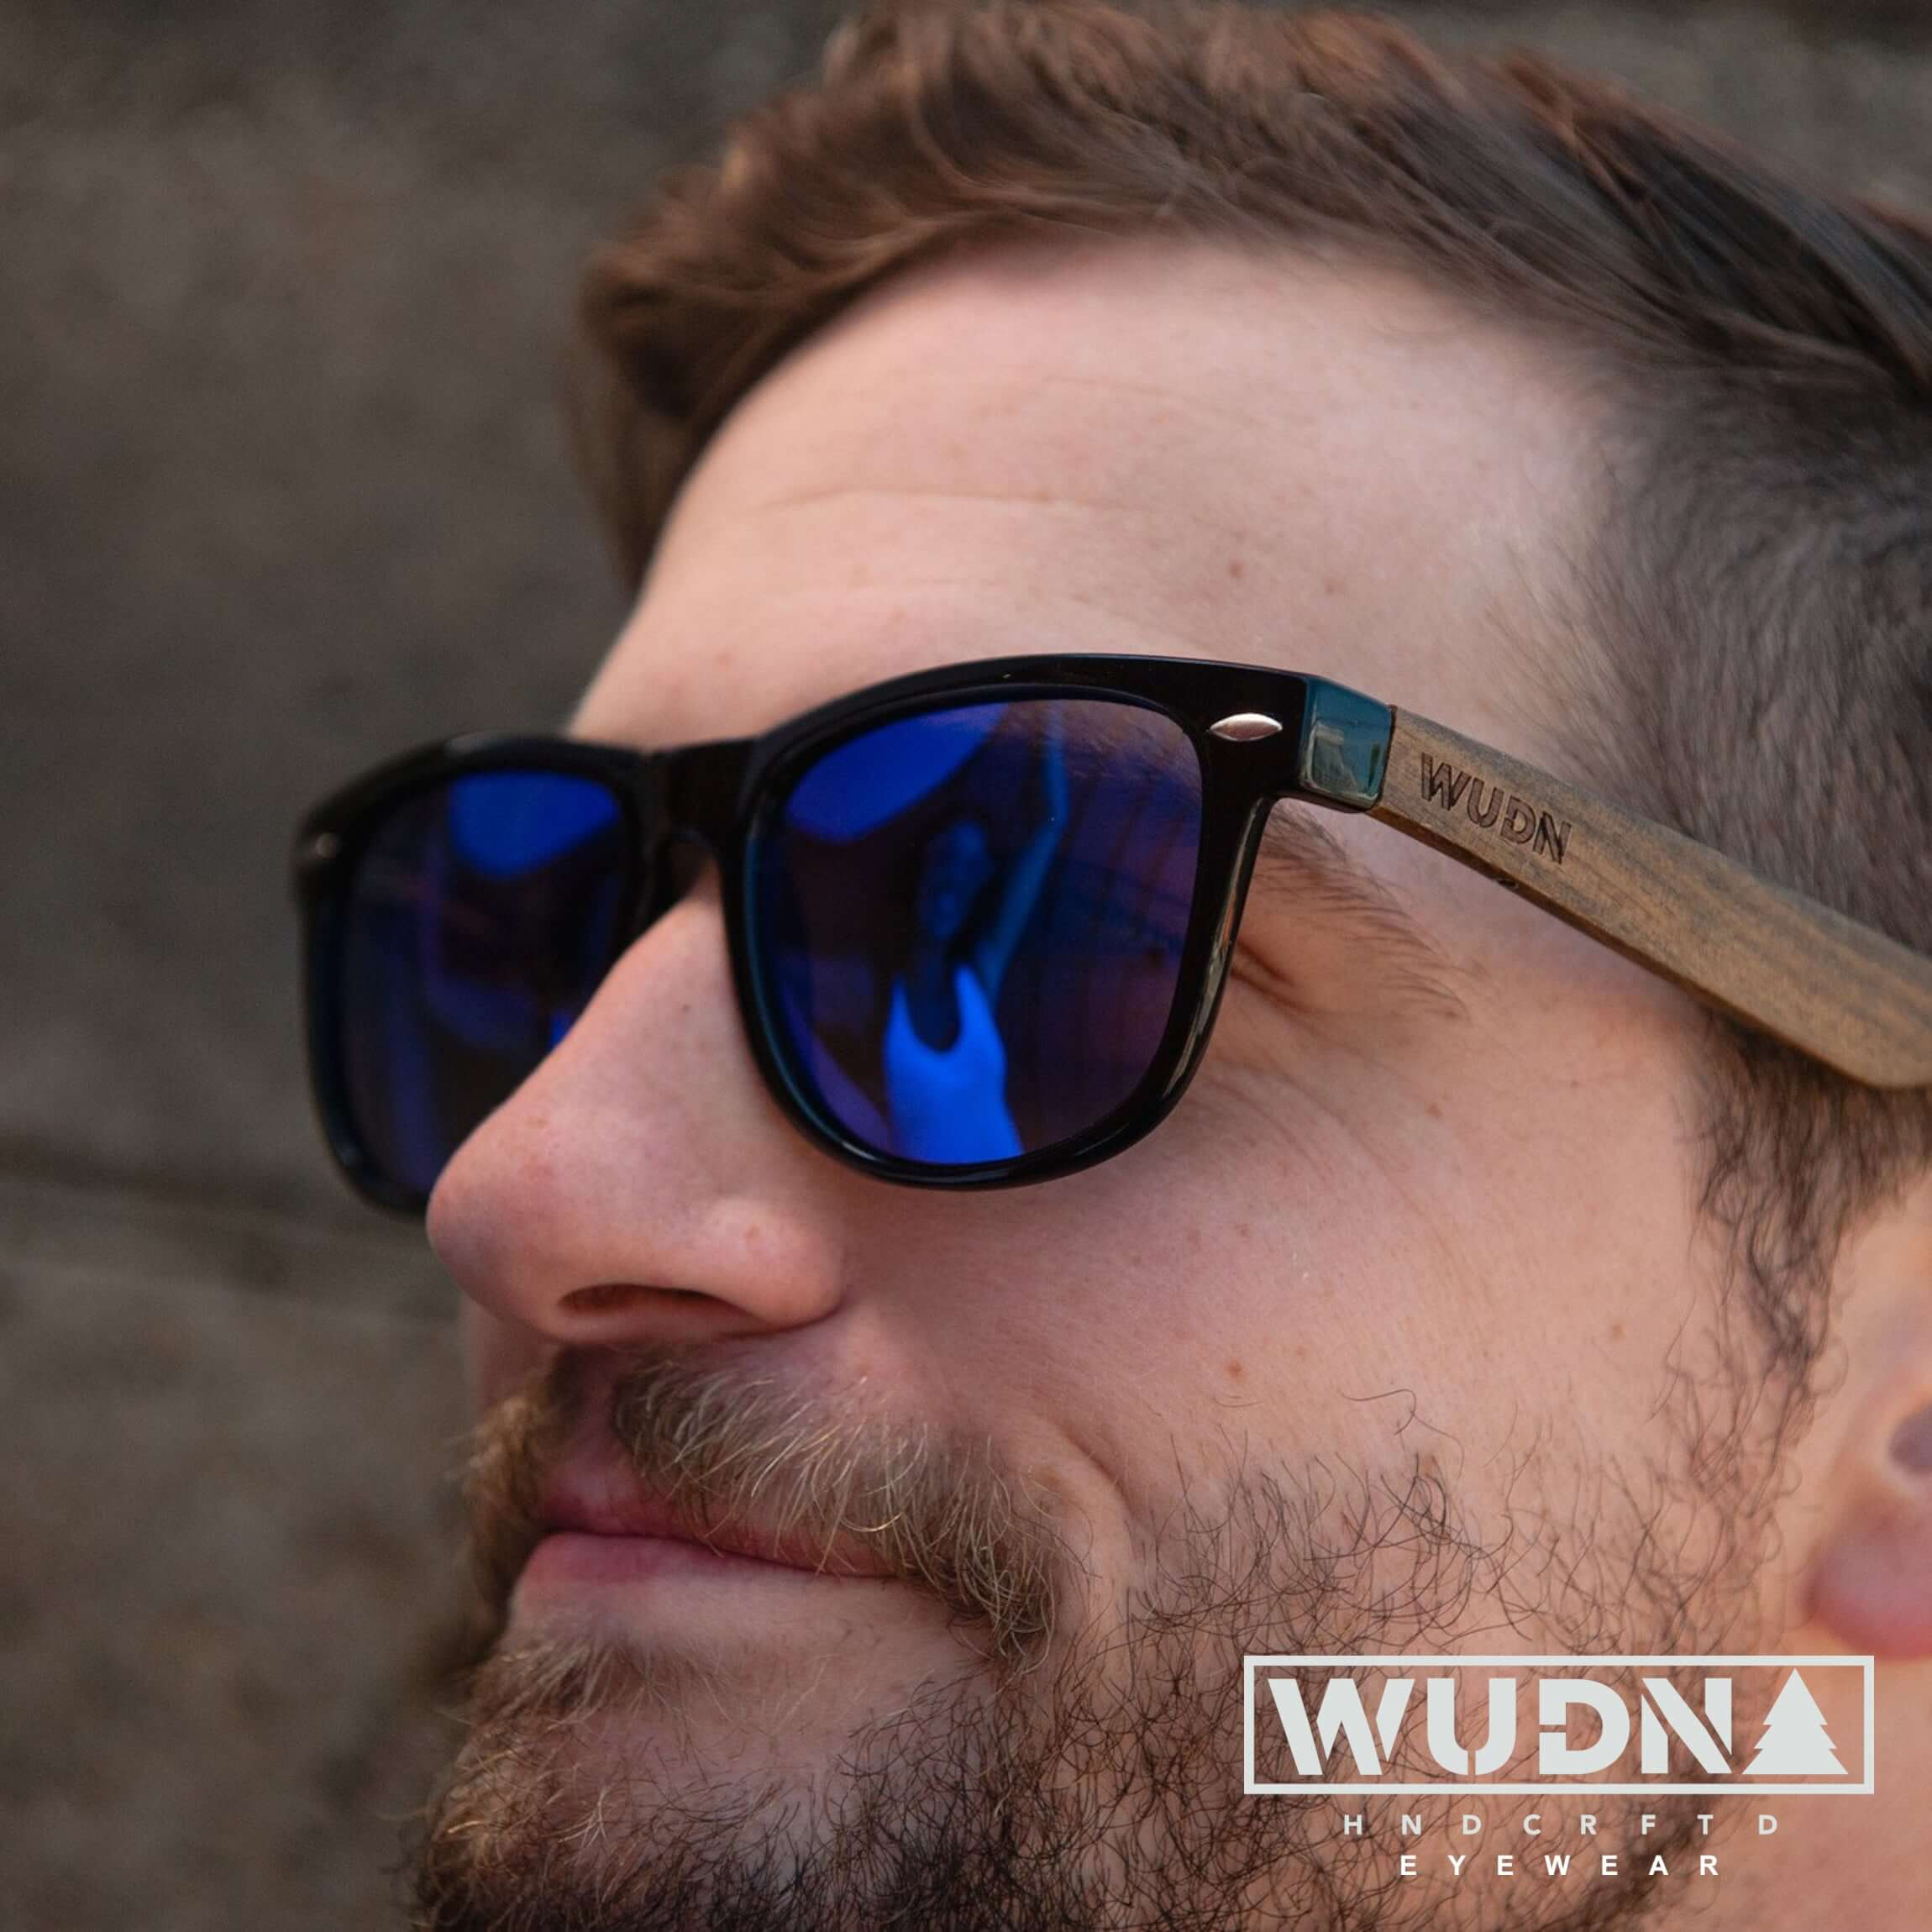 Real Ebony Wood Wanderer Style Sunglasses by WUDN, Sunglasses - WUDN